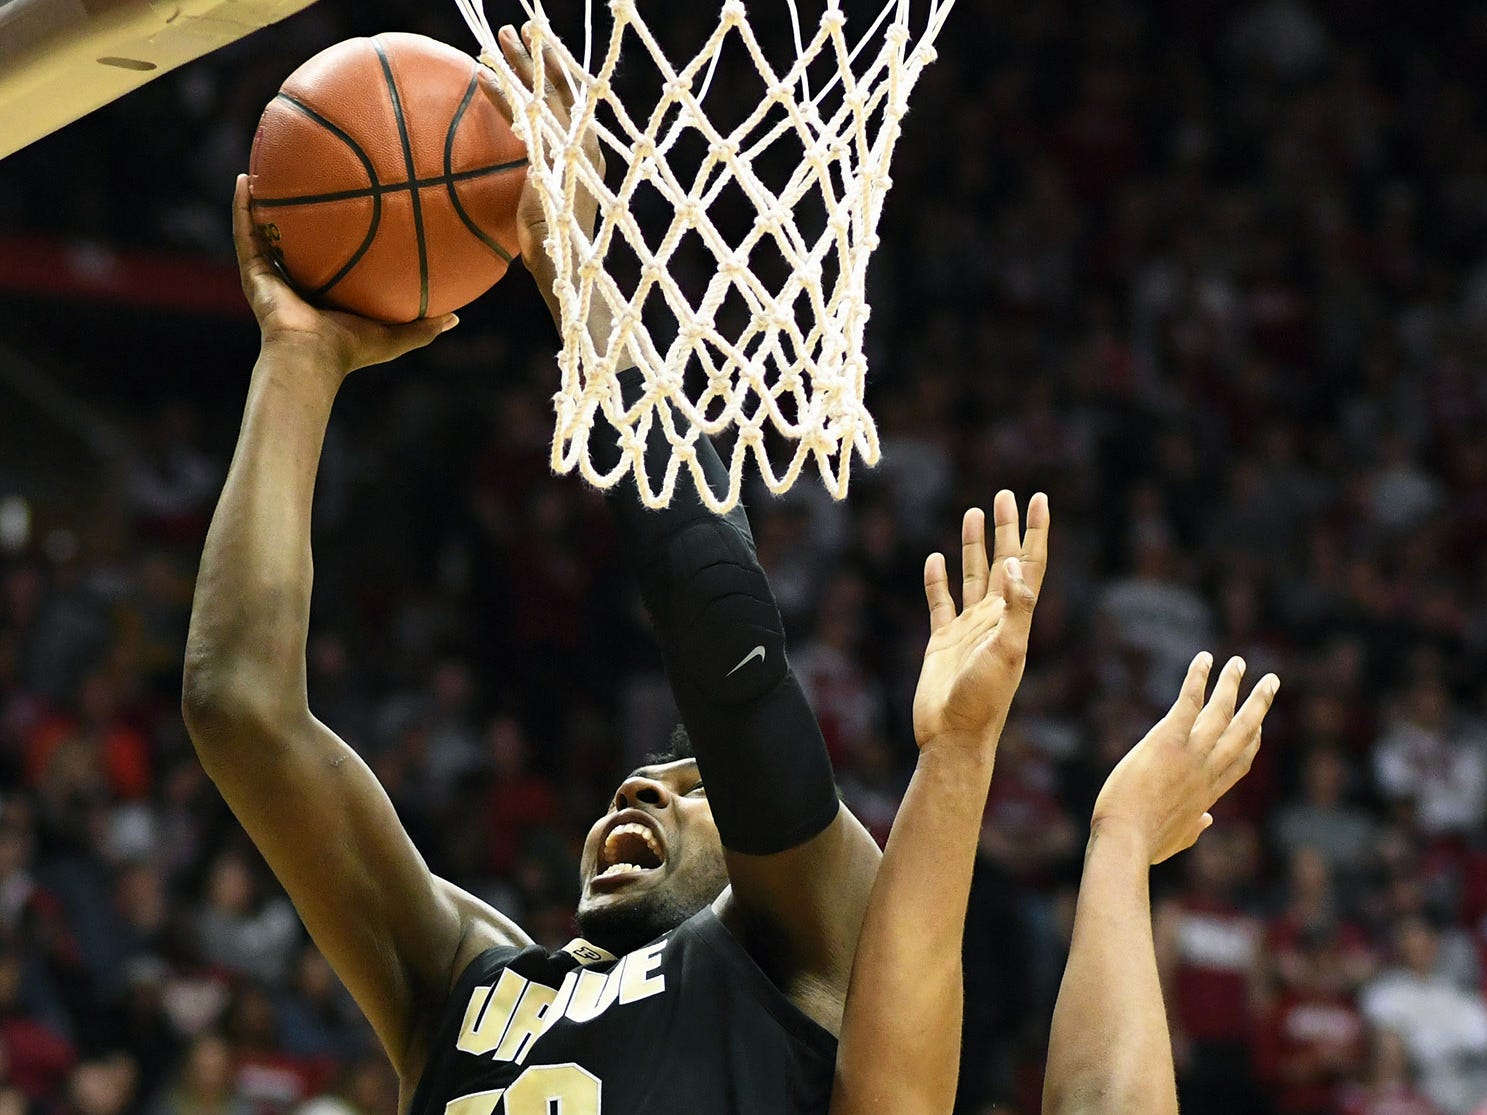 Purdue Boilermakers forward Trevion Williams (50) makes a layup during the game against Indiana at Simon Skjodt Assembly Hall in Bloomington, Ind., on Tuesday, Feb. 19, 2019.